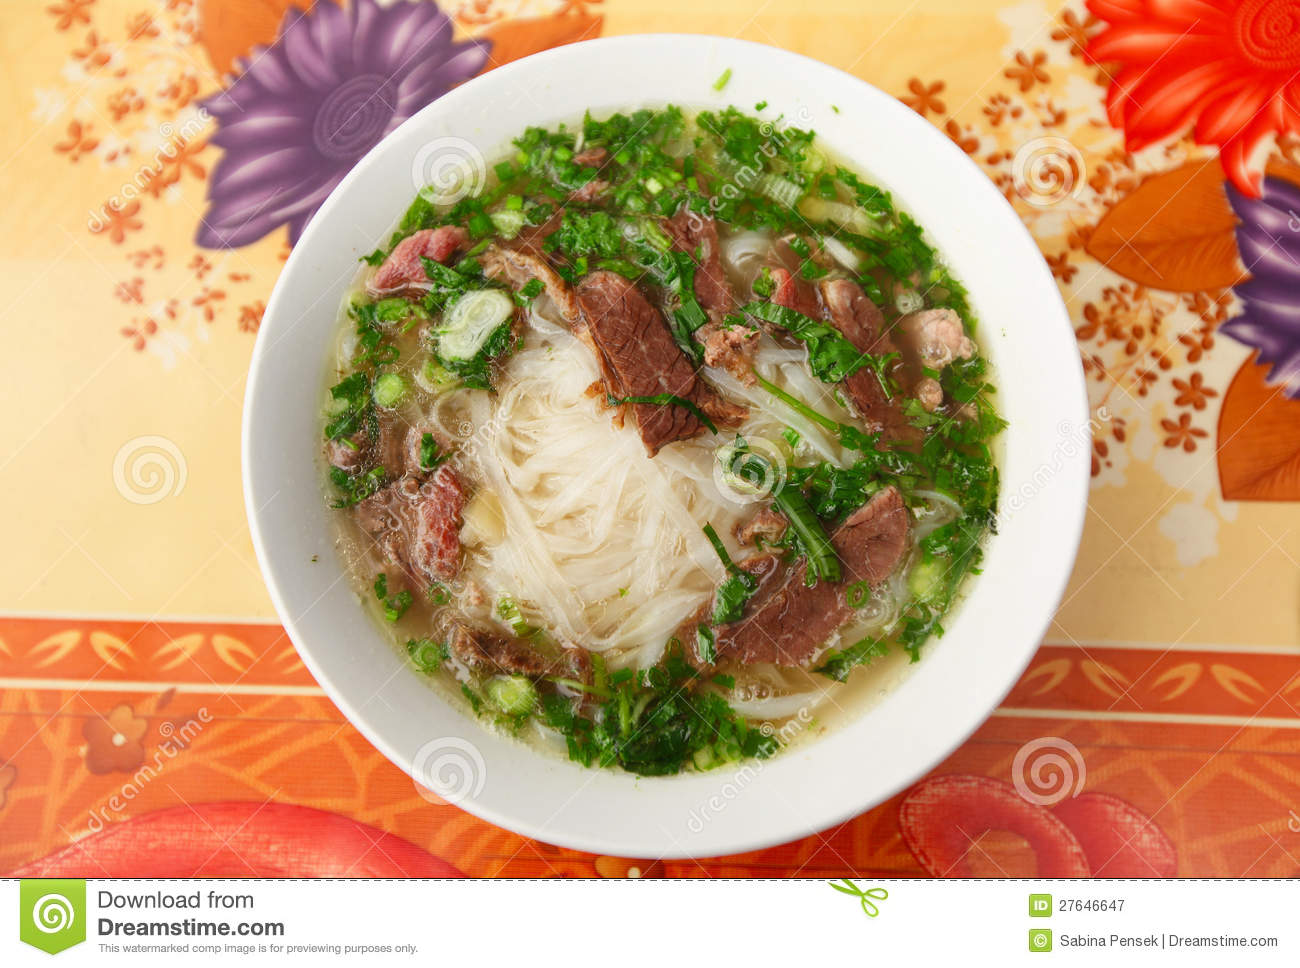 Free Stock Photography  Pho Vietnamese Soup With Meat And Noodles